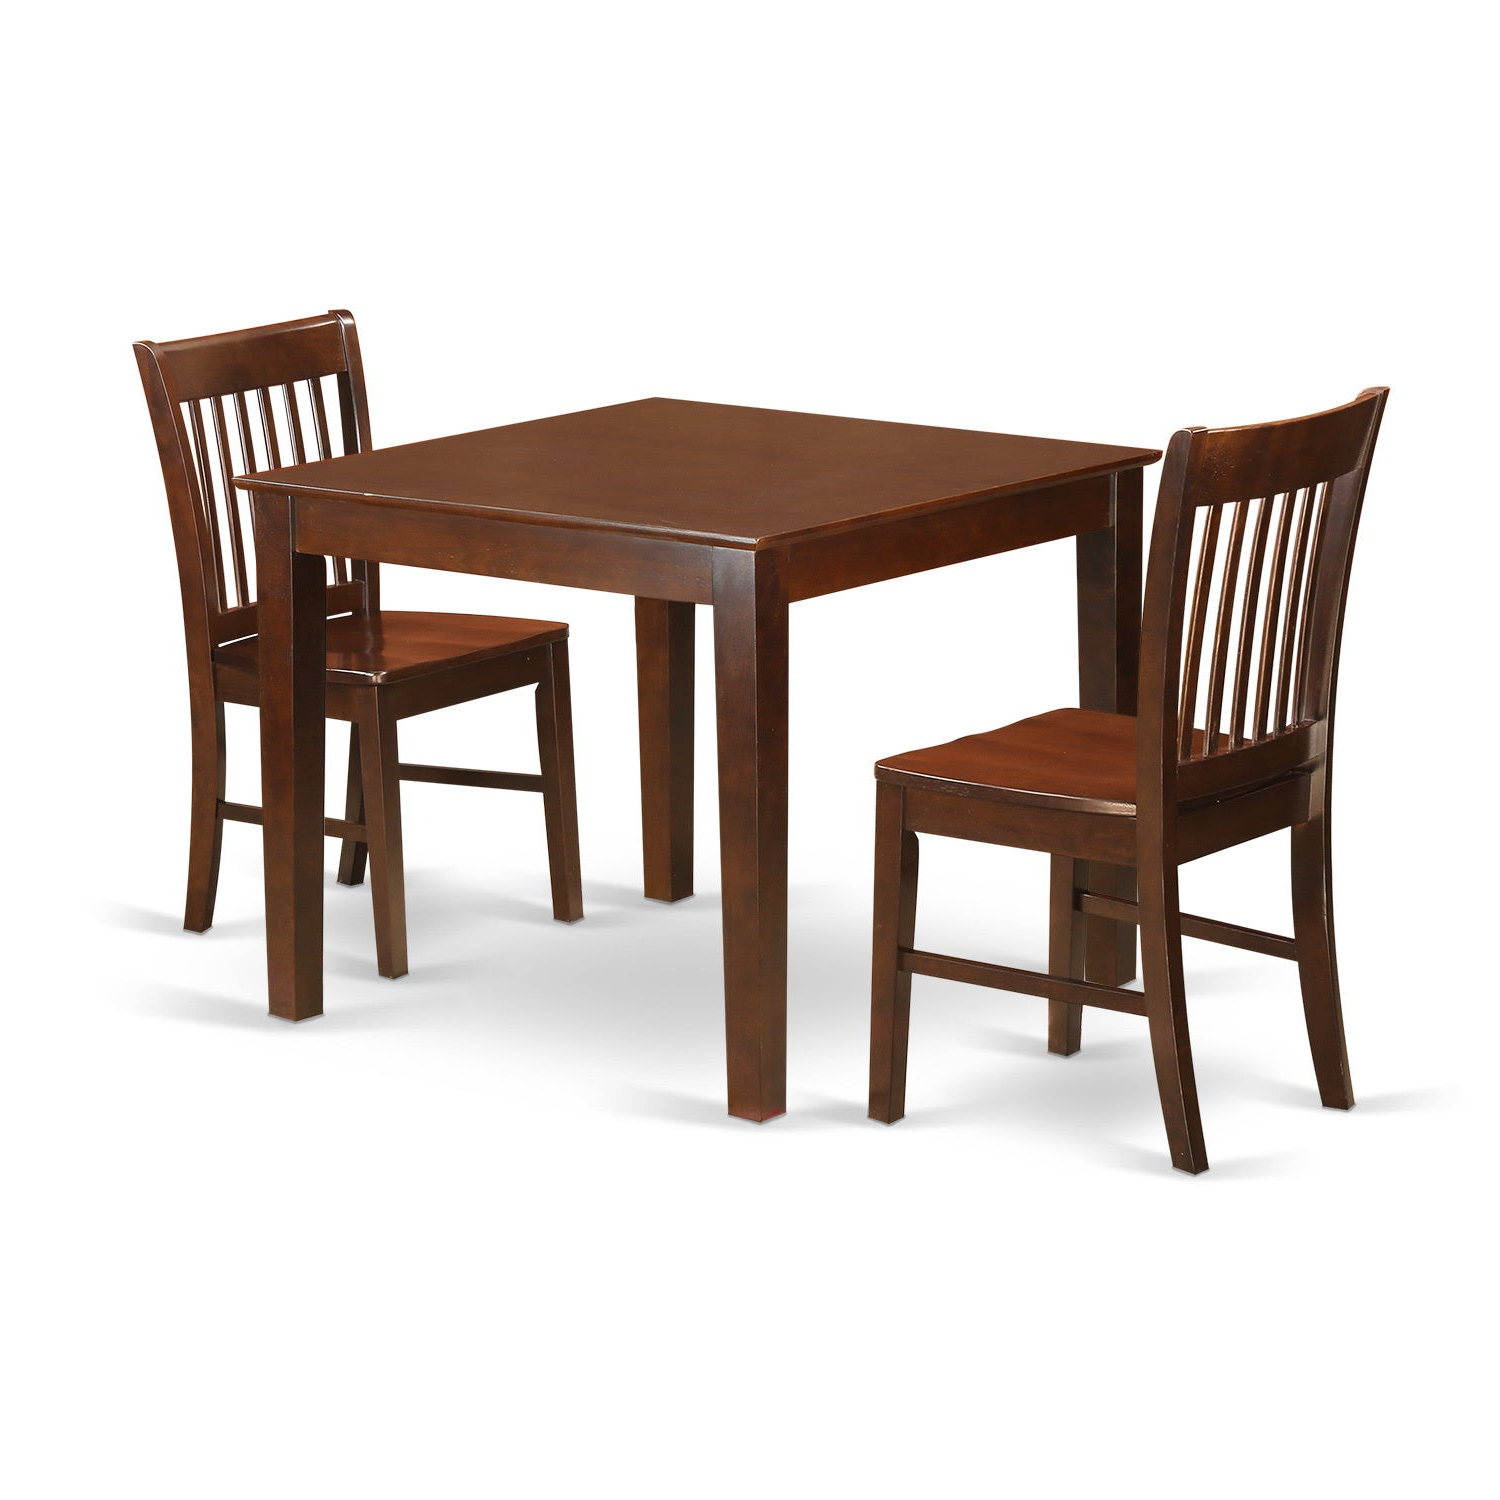 Current Frida 3 Piece Dining Table Sets In Buy 3 Piece Sets Kitchen & Dining Room Sets Online At Overstock (View 17 of 25)